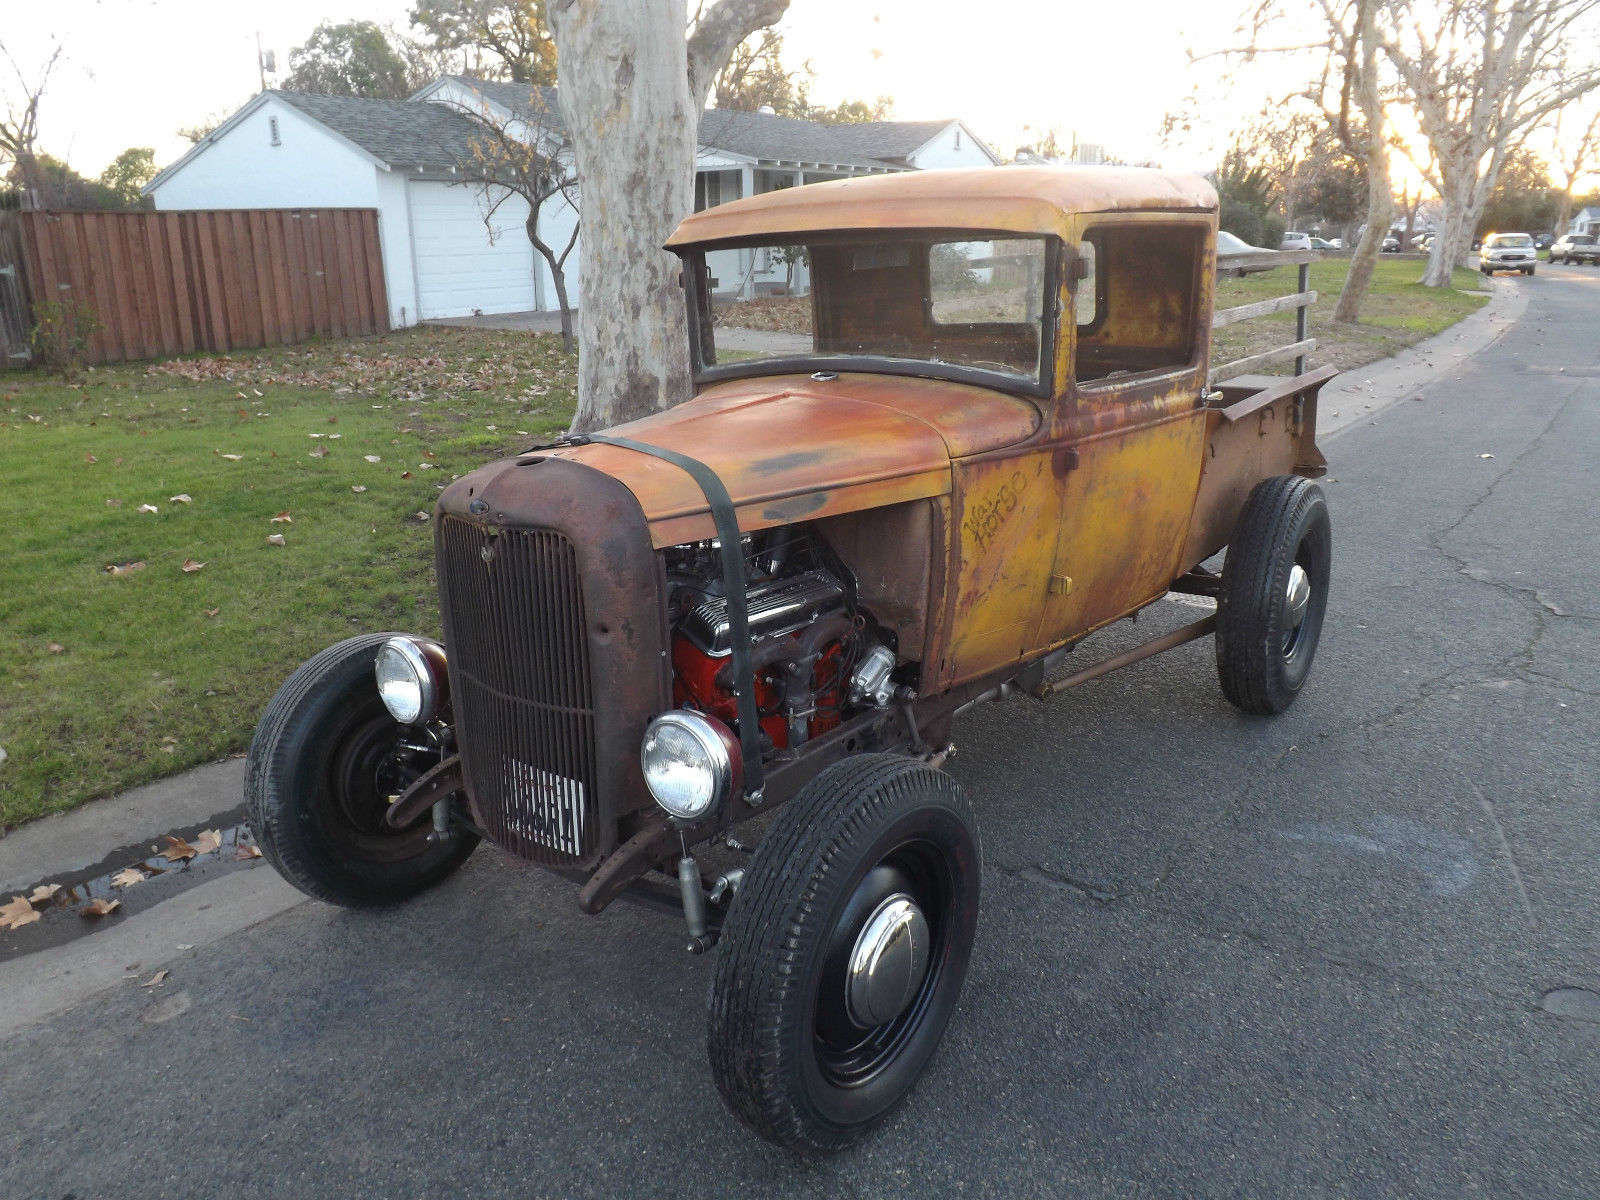 Late 1931 Pick Uptruck Sbc V8 Hot Rat Rod Custom Daily Driver No 1955 Ford F100 Wide Bed Model A Traditional Pickup Patina Truck For Sale In Sacramento California United States